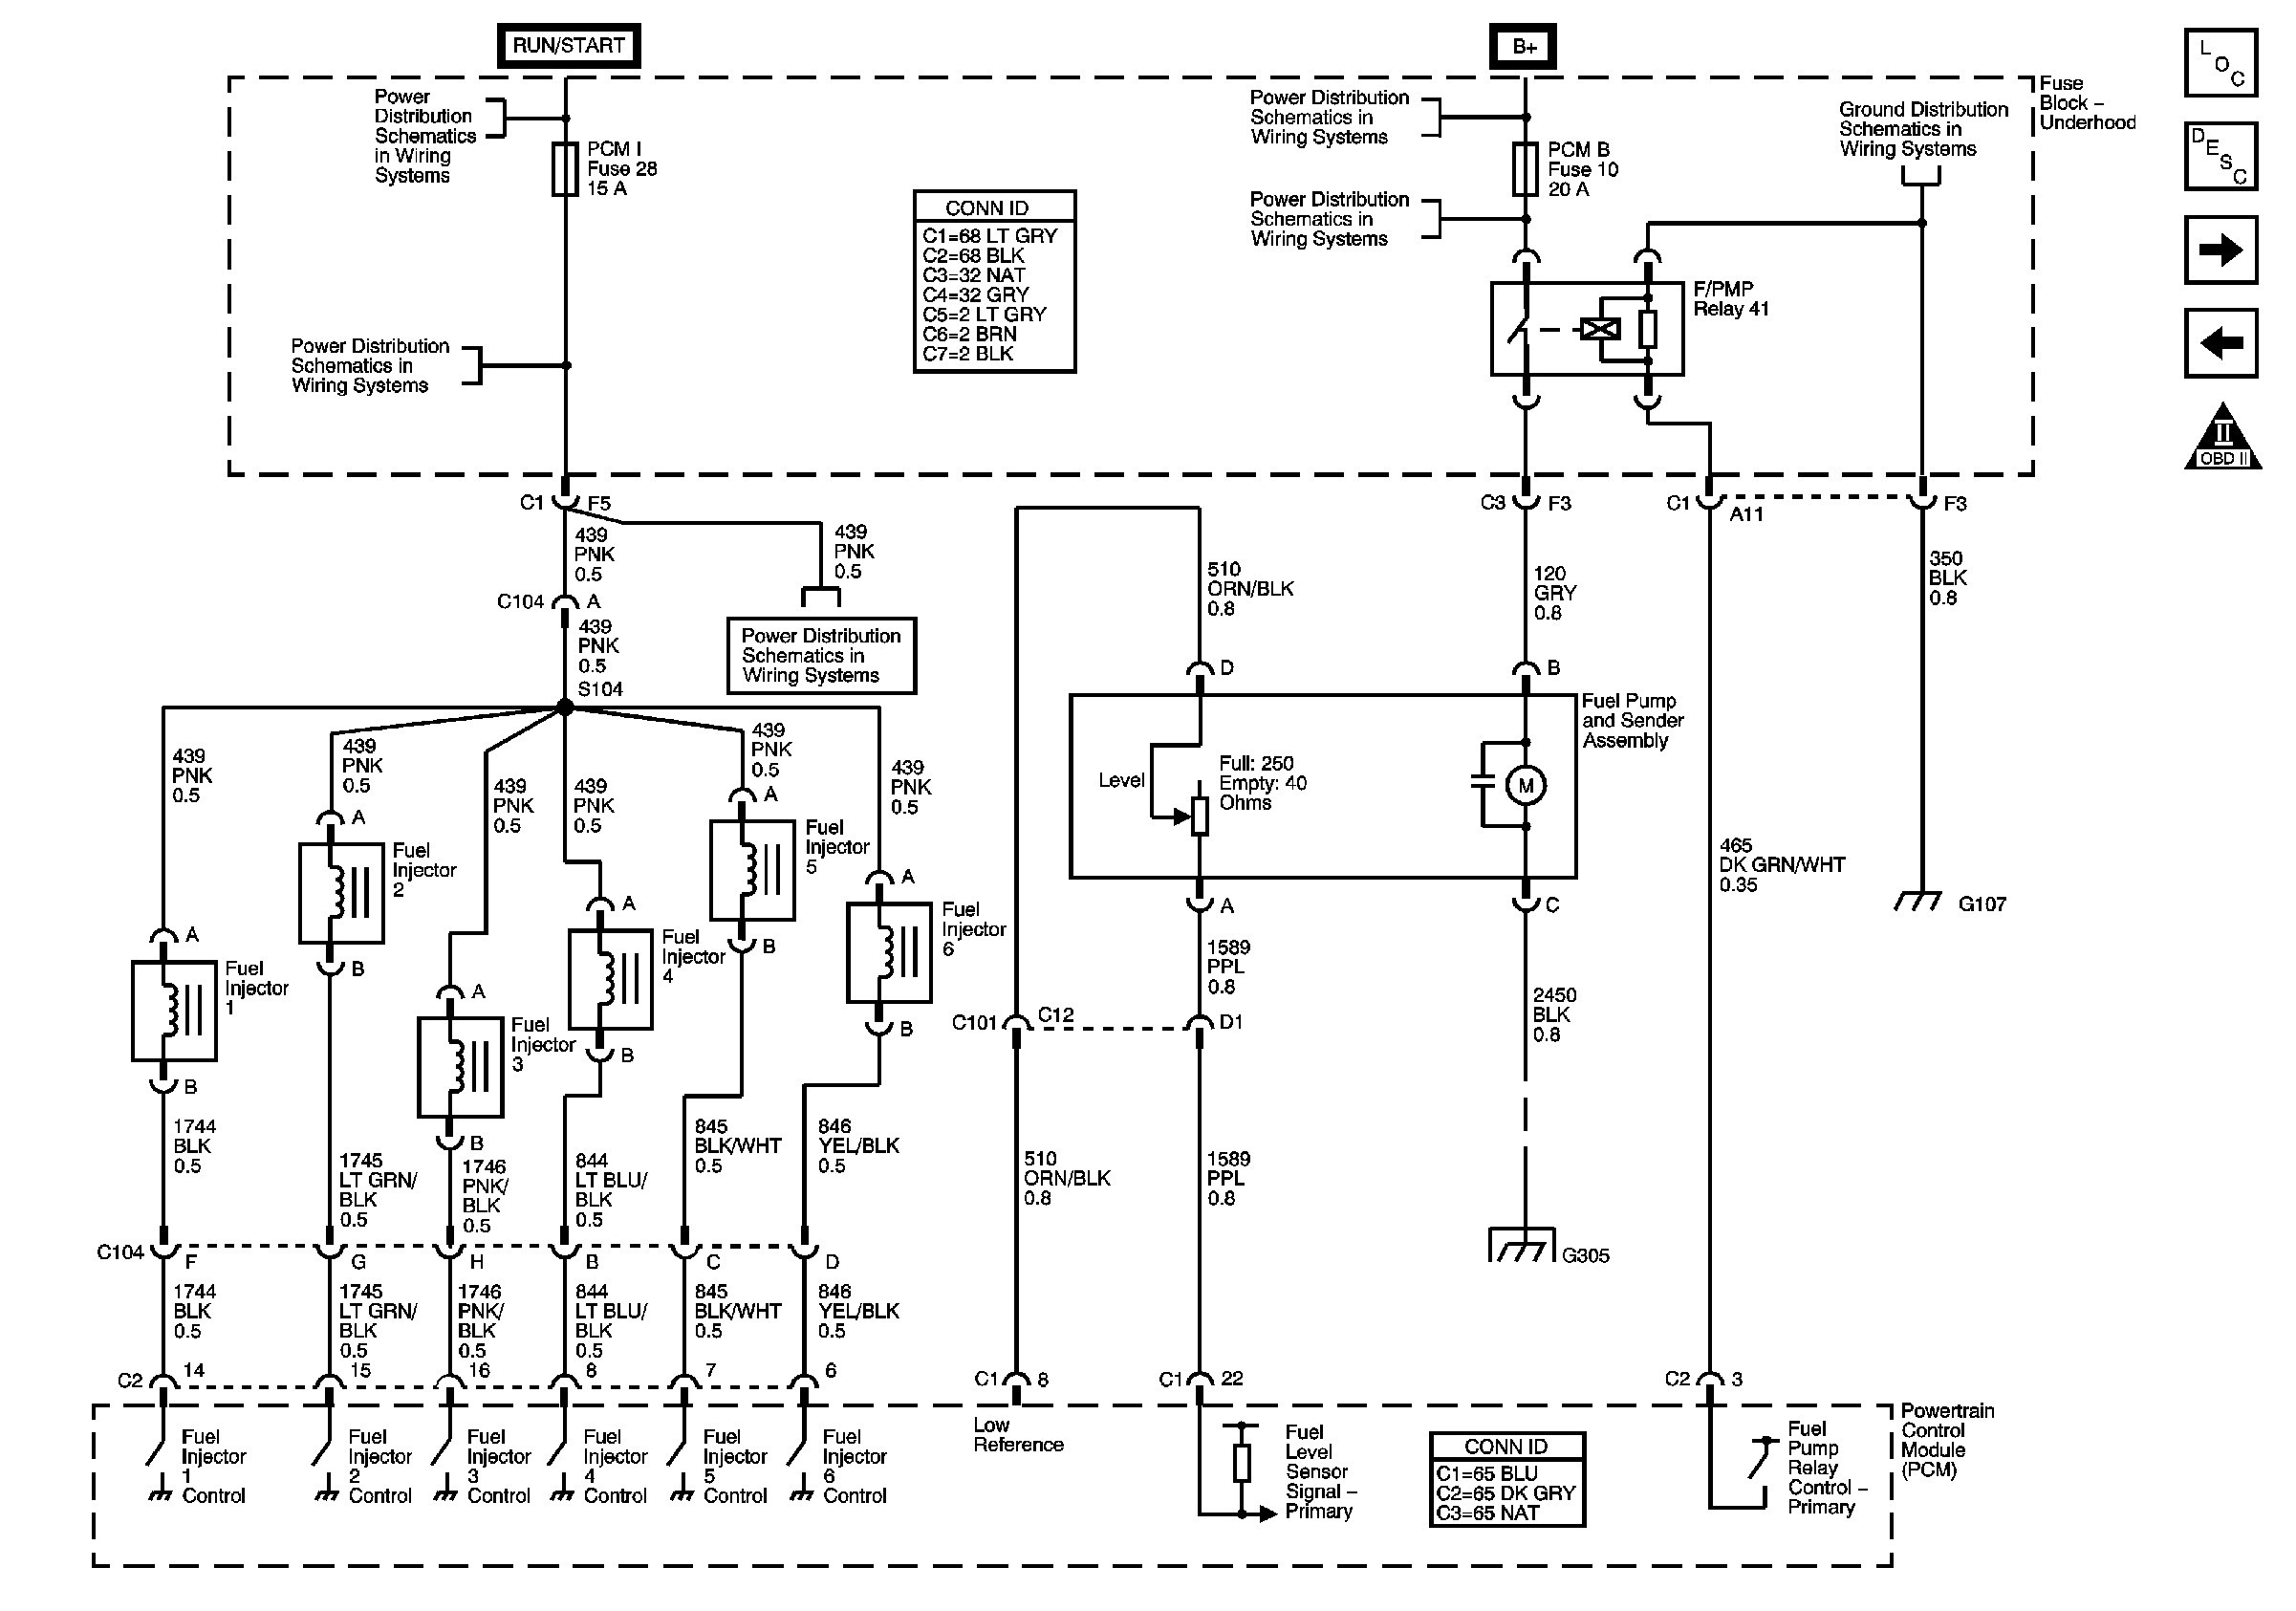 diagram] 1995 chevy blazer wiring diagram full version hd gm fuel pump wiring diagram 2005 elantra engine wiring diagram